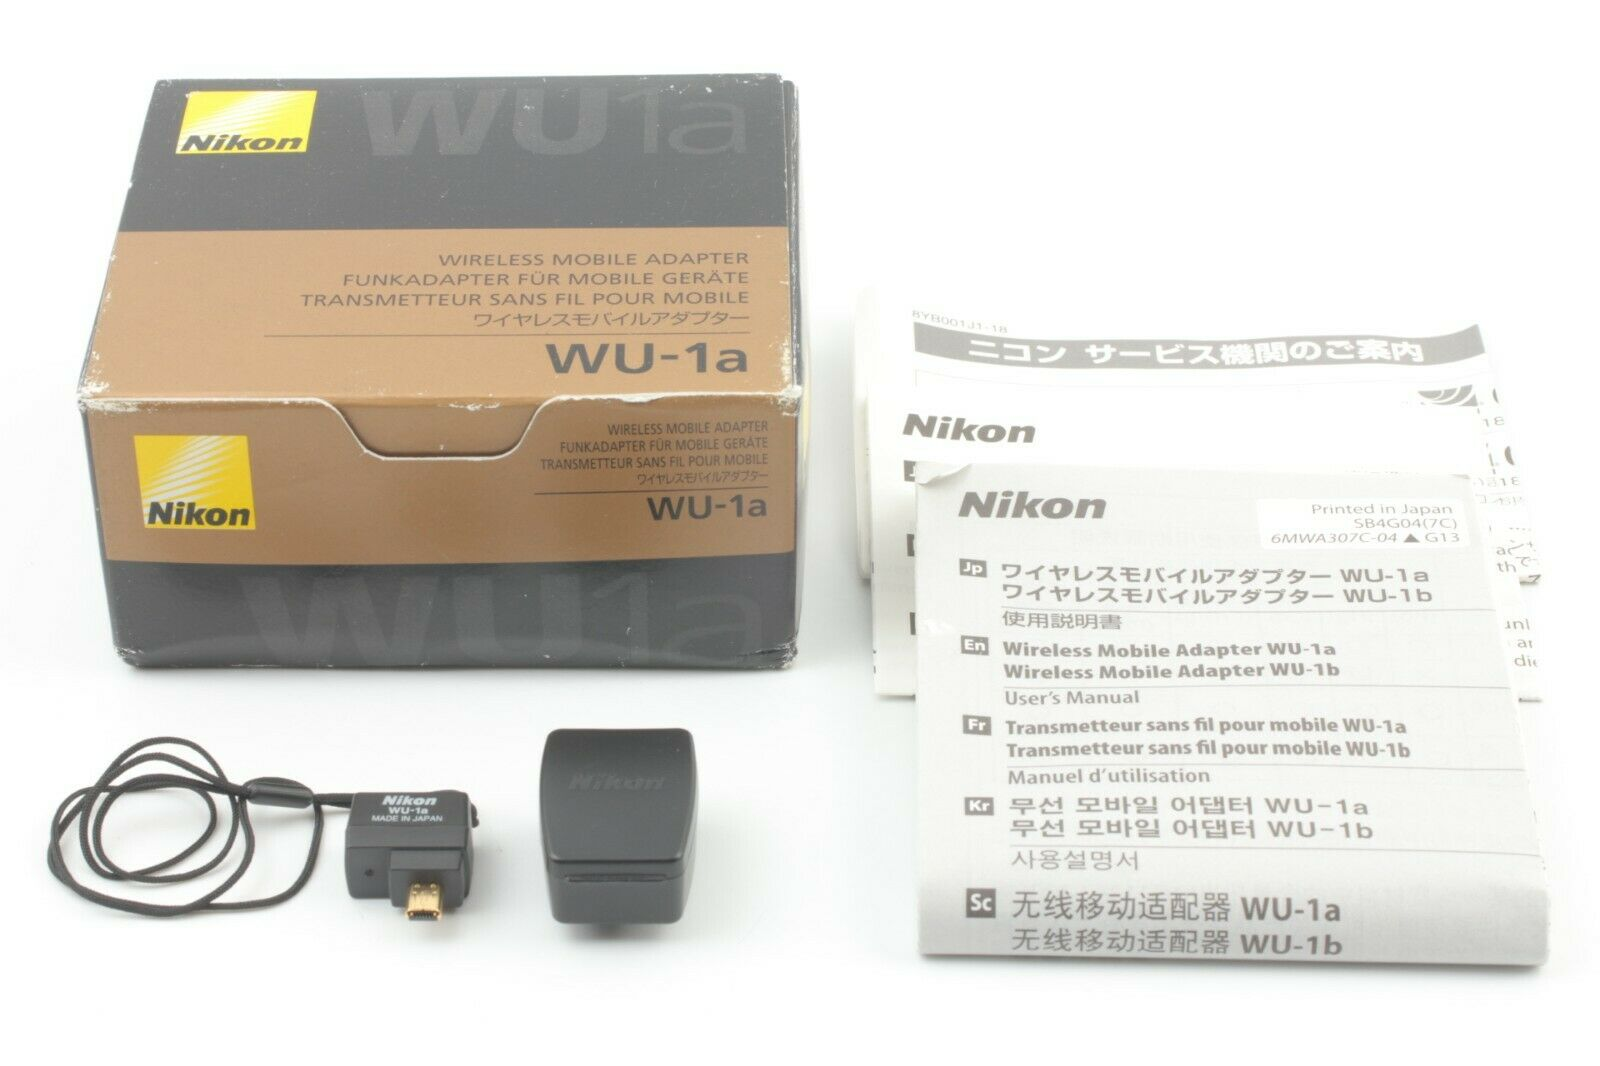 [UNUSED] Nikon WU-1a Wireless Mobile Adapter from Japan #572